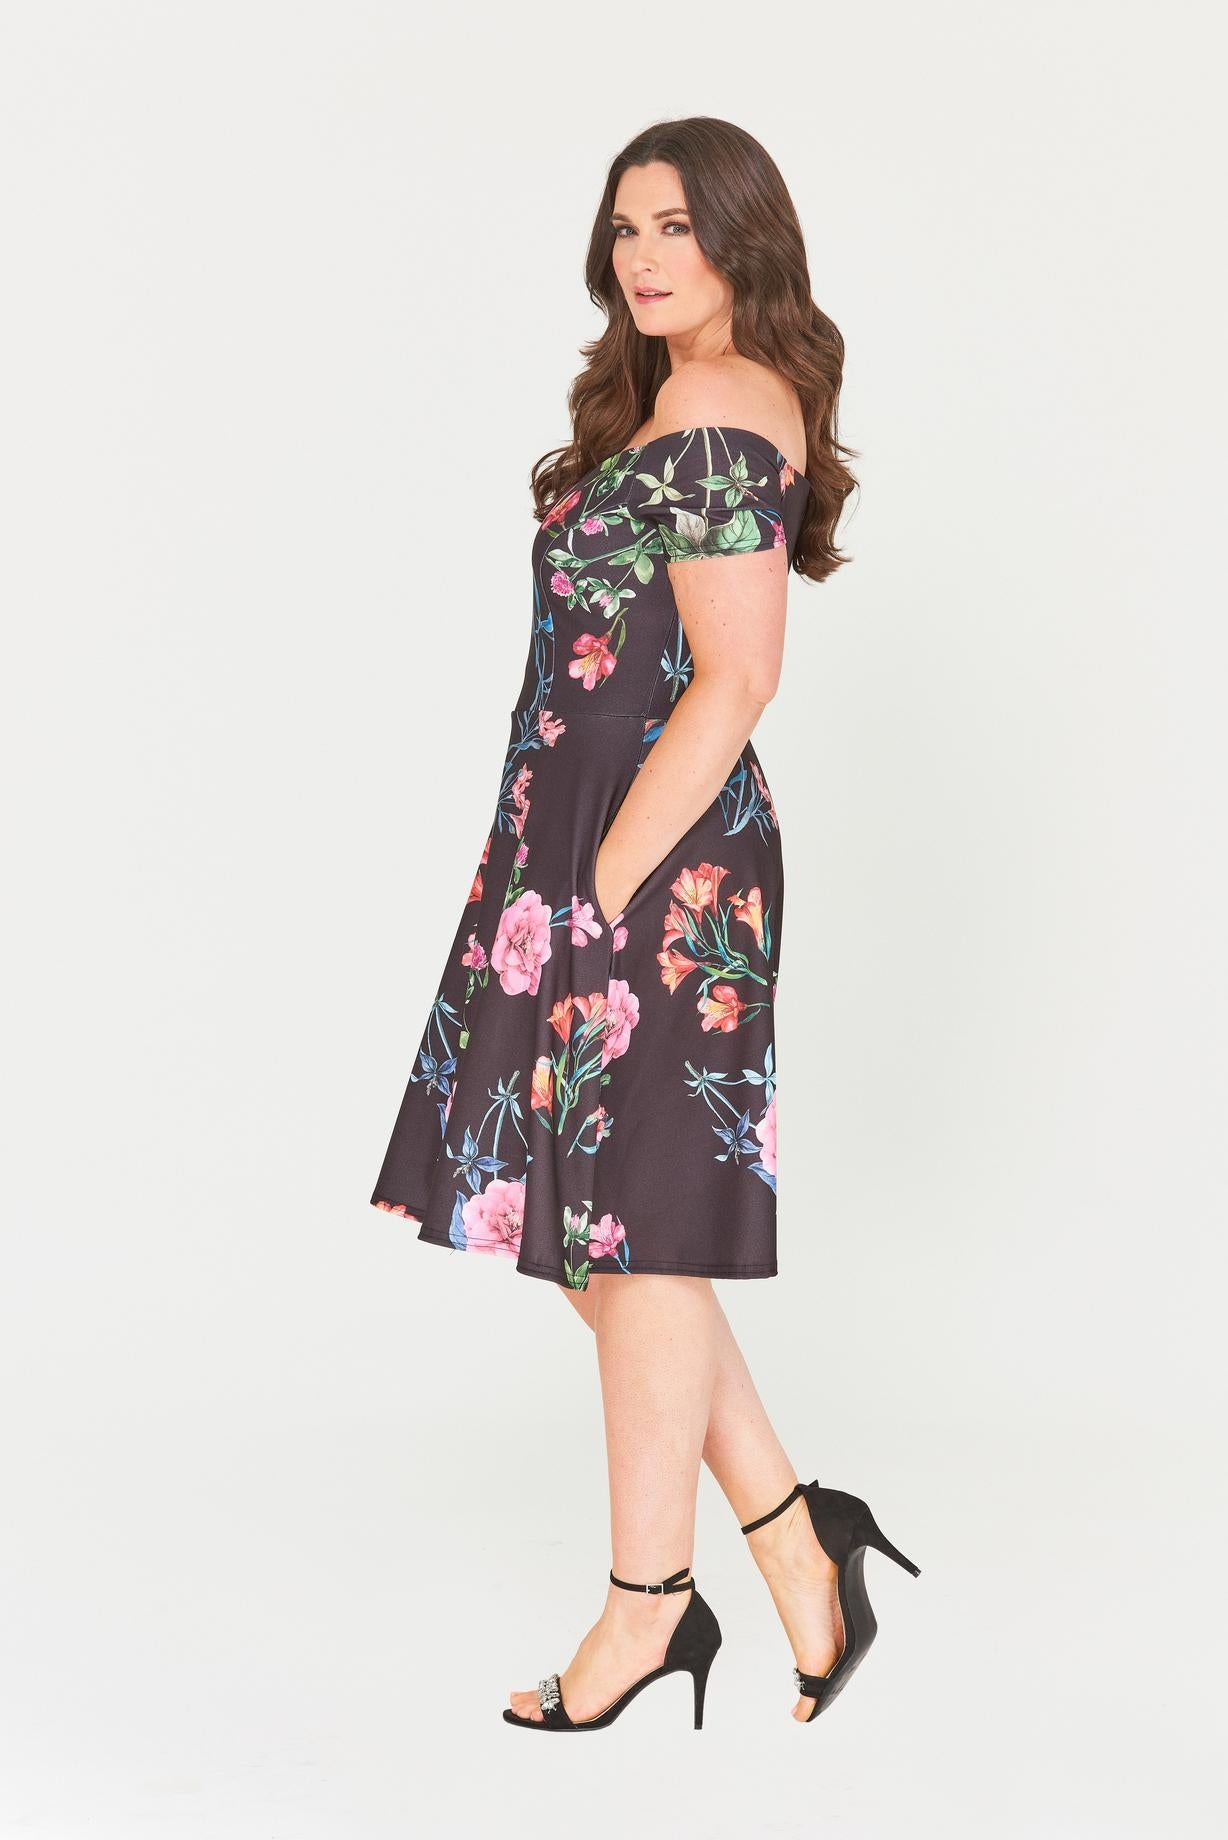 Kailyn Fit & Flare Dress-SOLD-SOLD-22-Daring Diva Australia